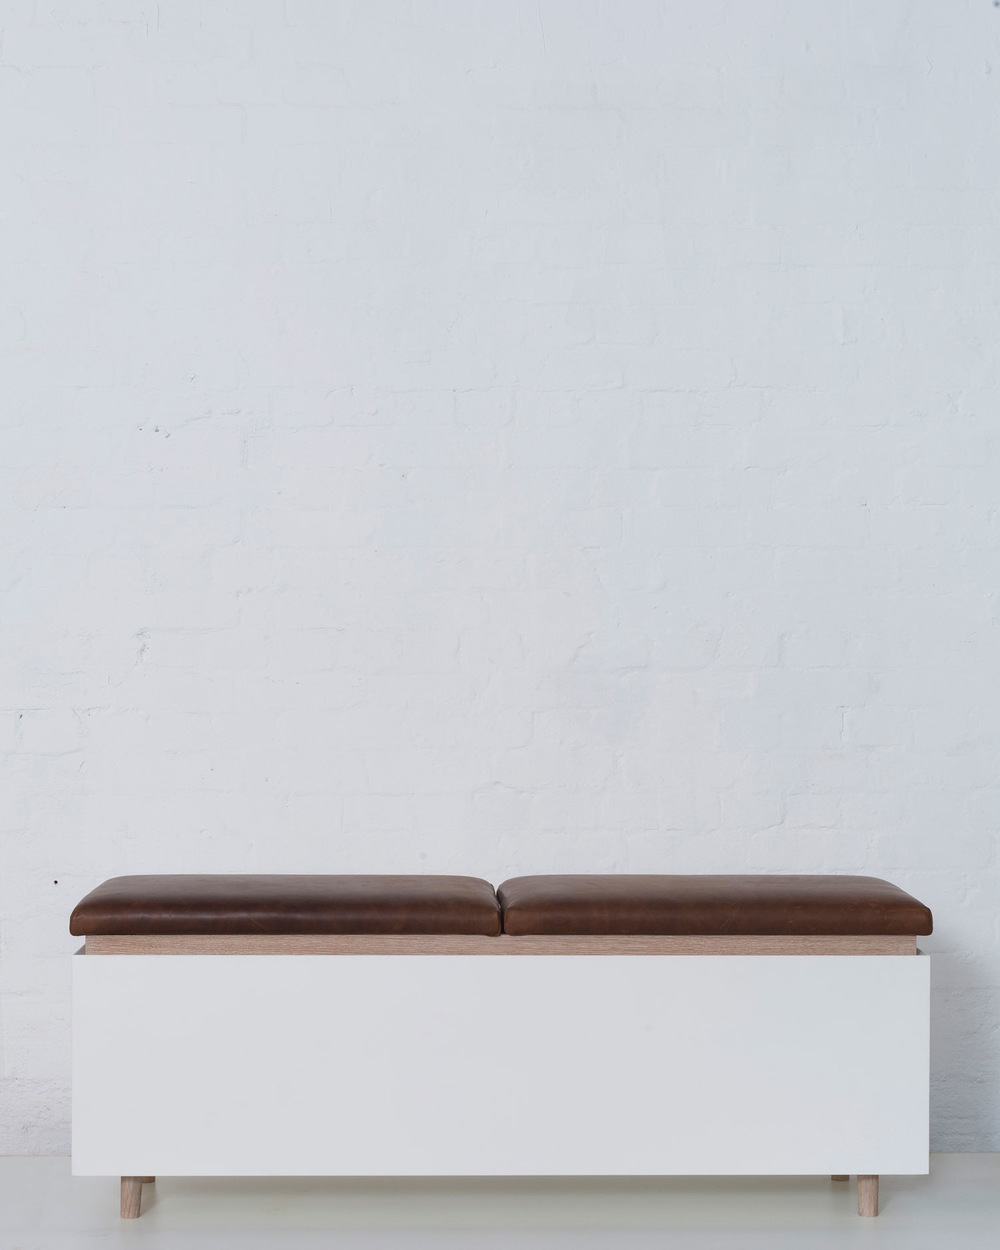 Merrett Houmøller Architects - Oak lined Ottoman with leather upholstery